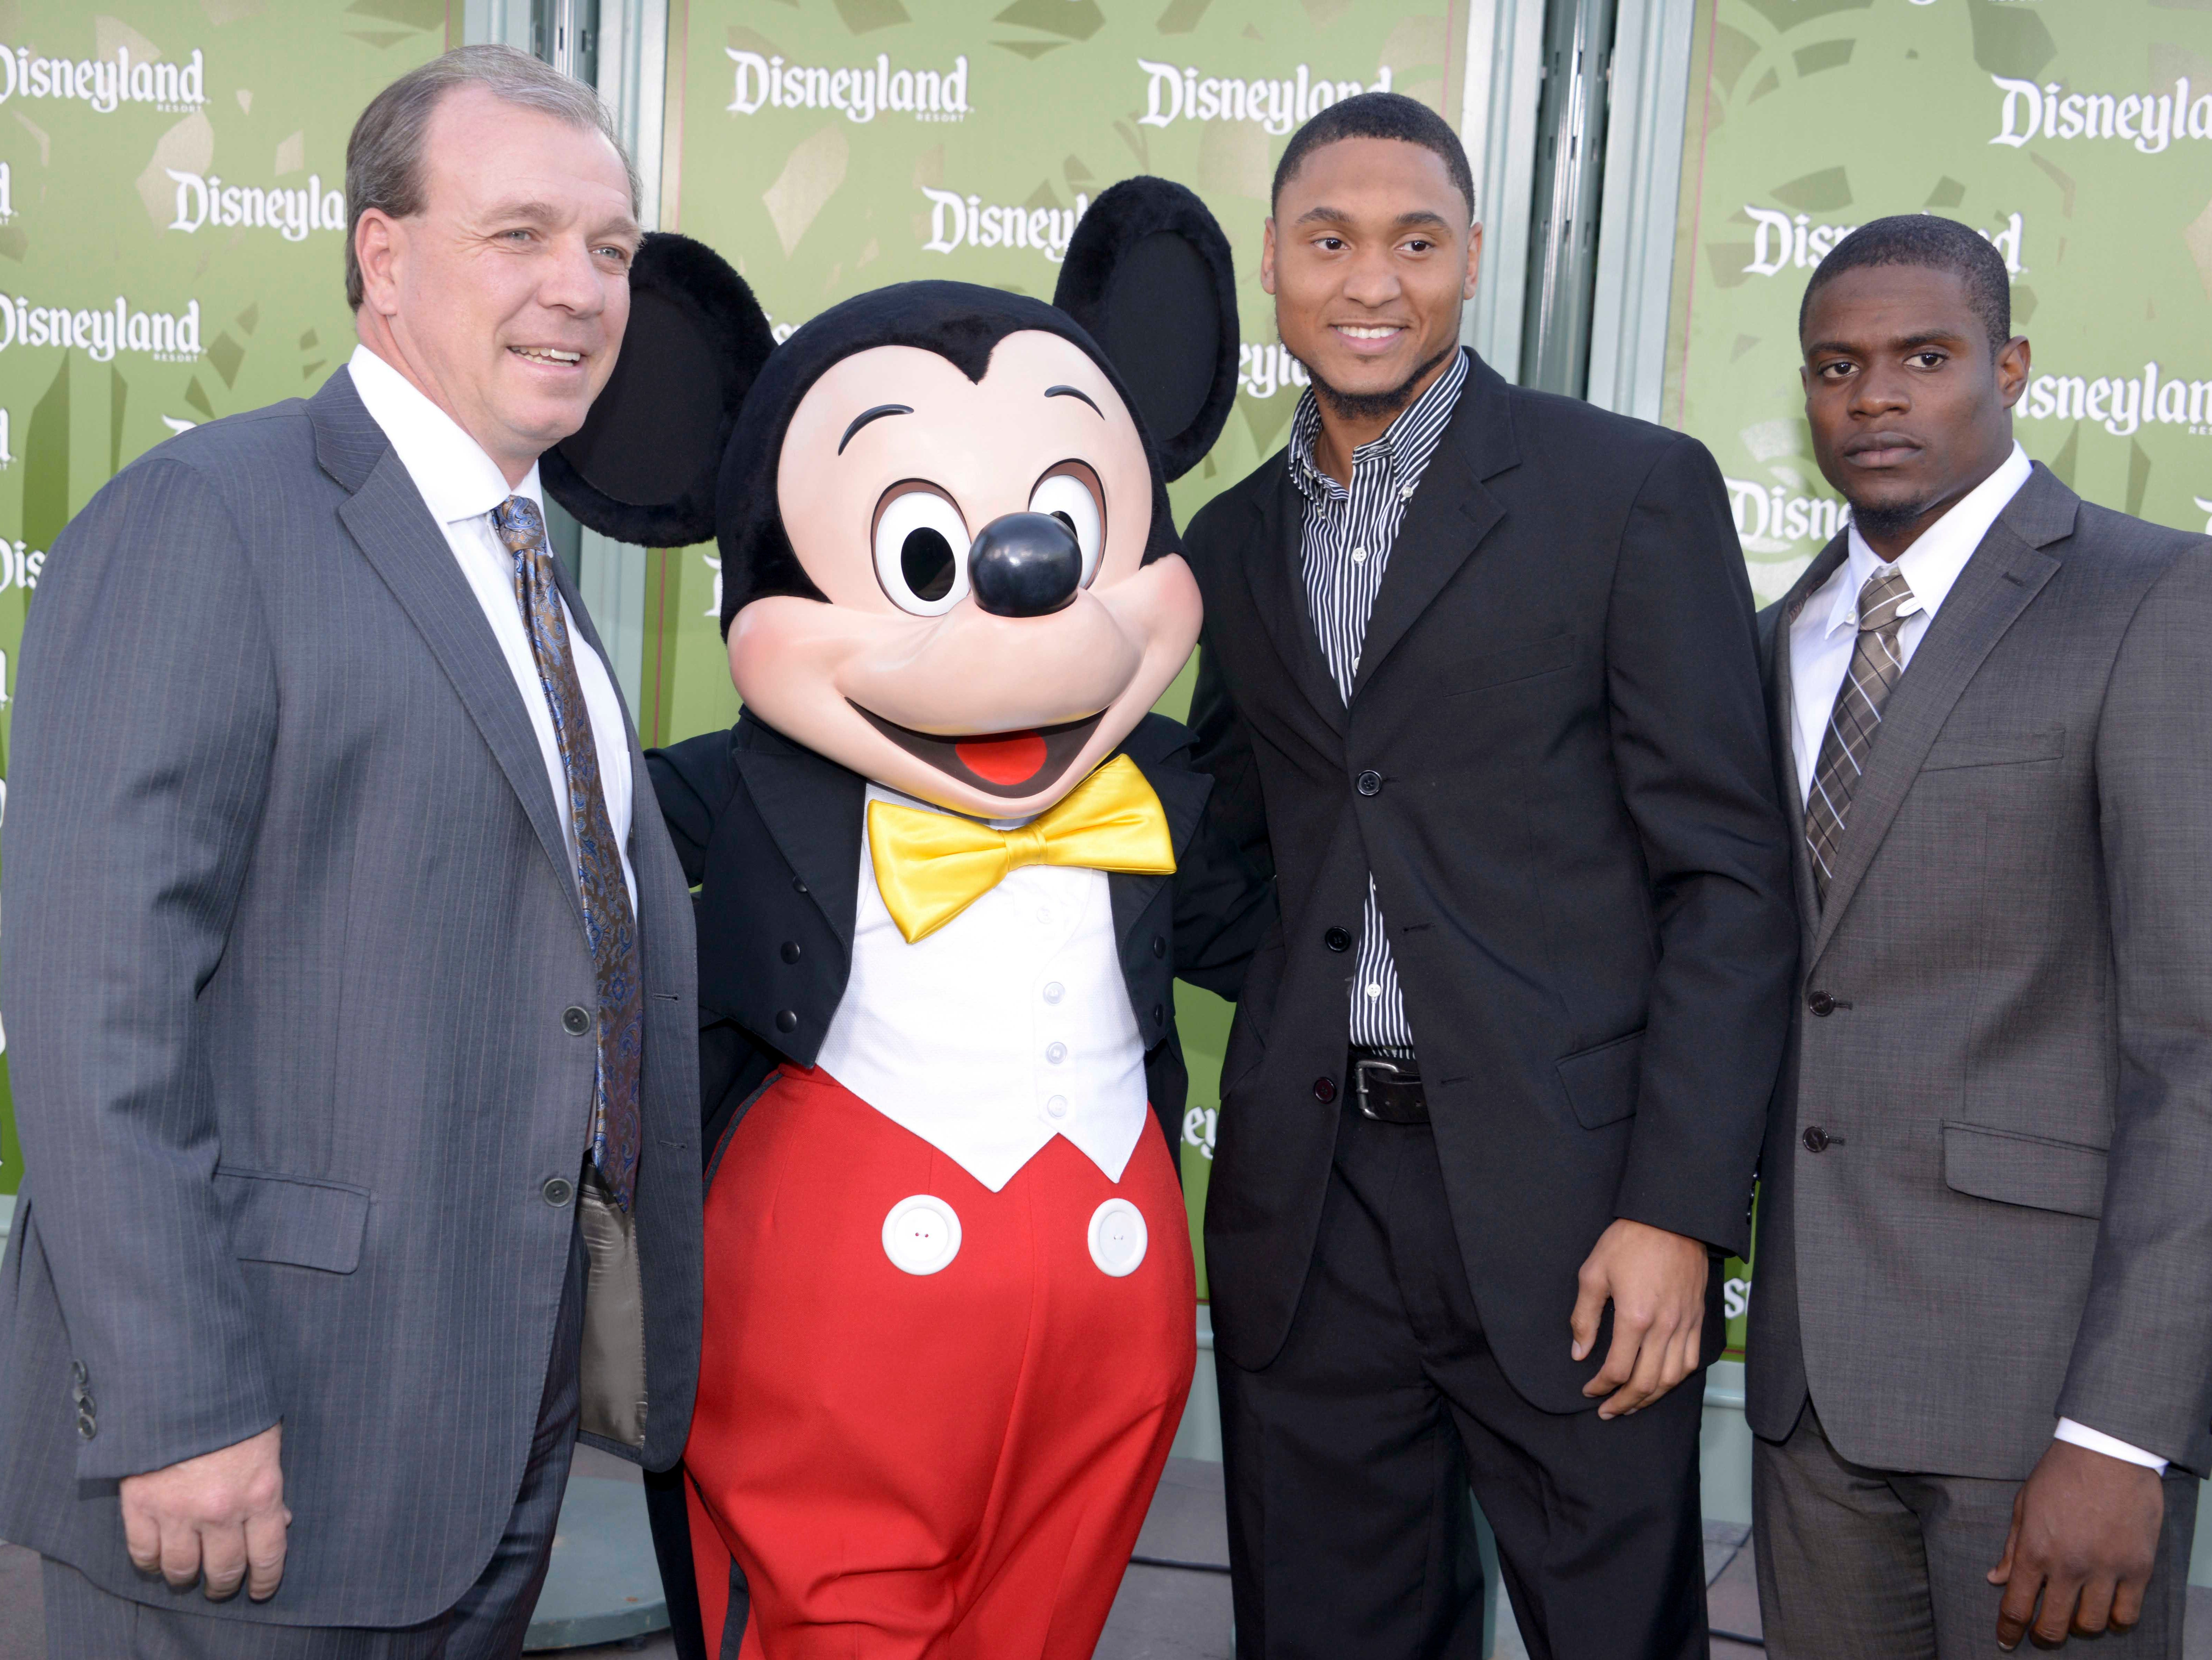 Dec 31, 2013; Anaheim, CA, USA; Florida State Seminoles coach Jimbo Fisher (left) poses with Mickey Mouse (second from left) and receiver Rashad Greene (second from right) and defensive back Lamarcus Joyner at a press conference for the 2014 BCS National Championship at ESPN Zone Downtown Disney. Mandatory Credit: Kirby Lee-USA TODAY Sports